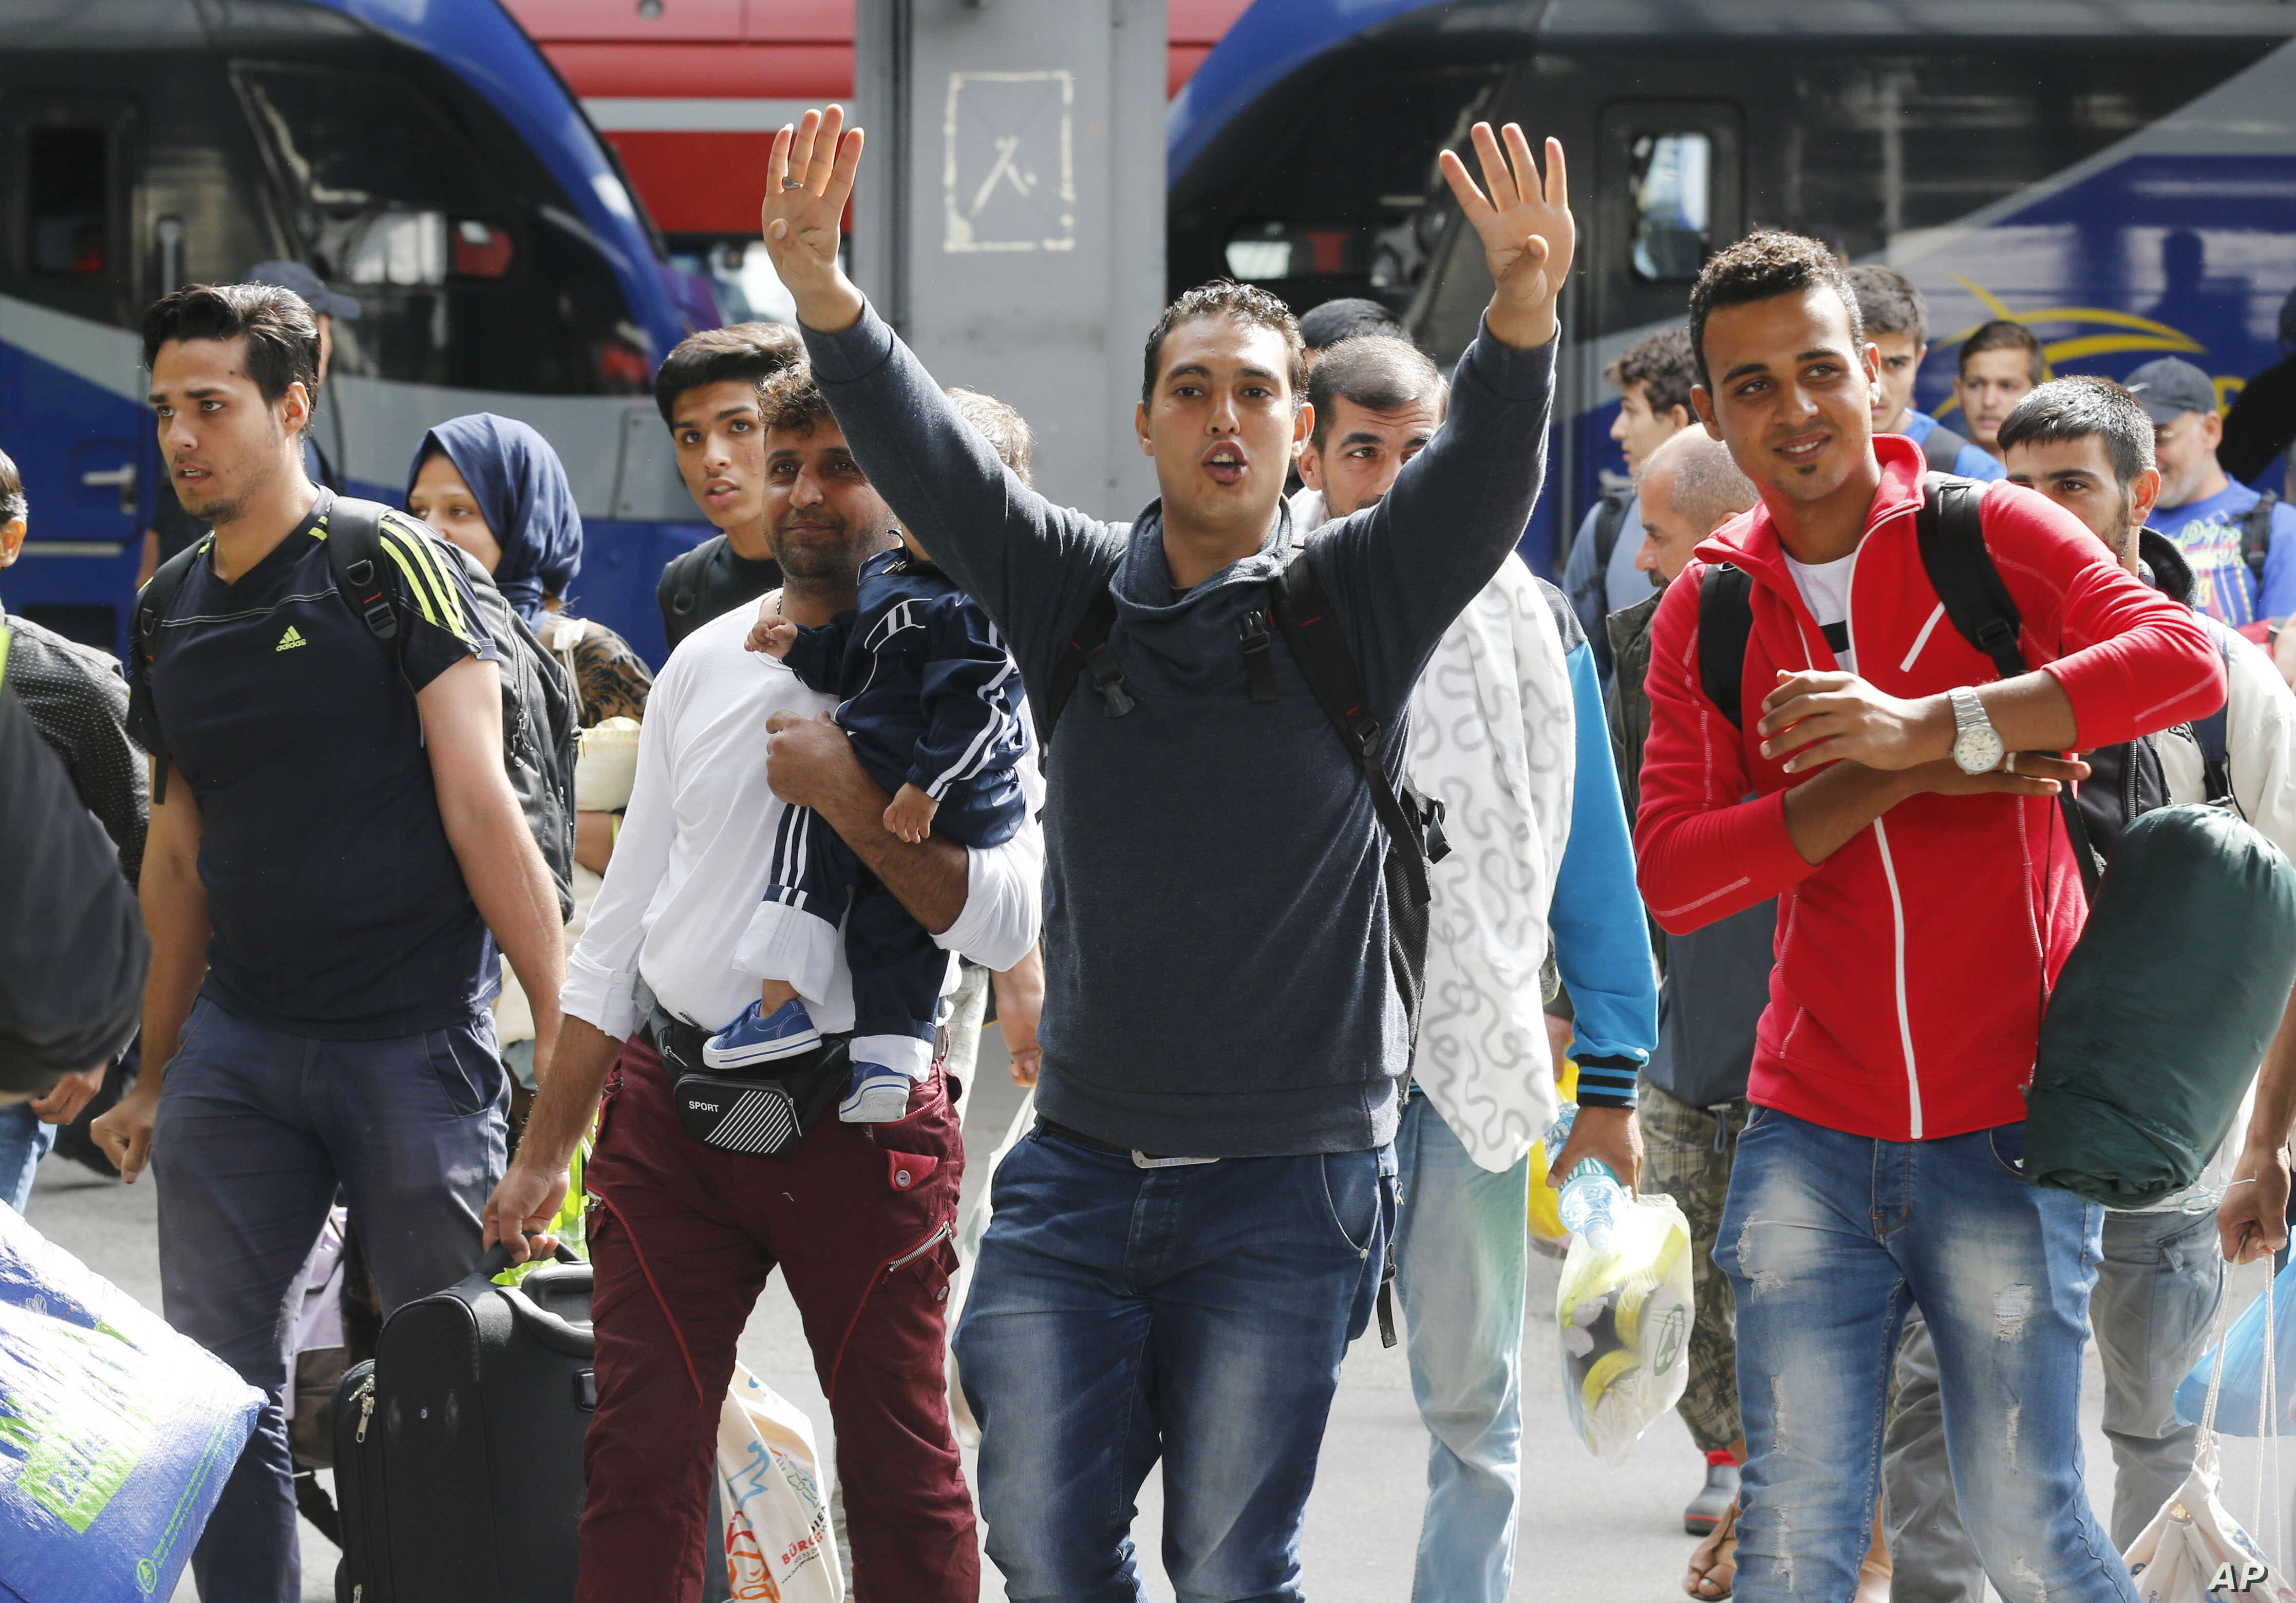 Refugees wave as they arrive at the main train station in Munich, Germany, Sept. 5, 2015.